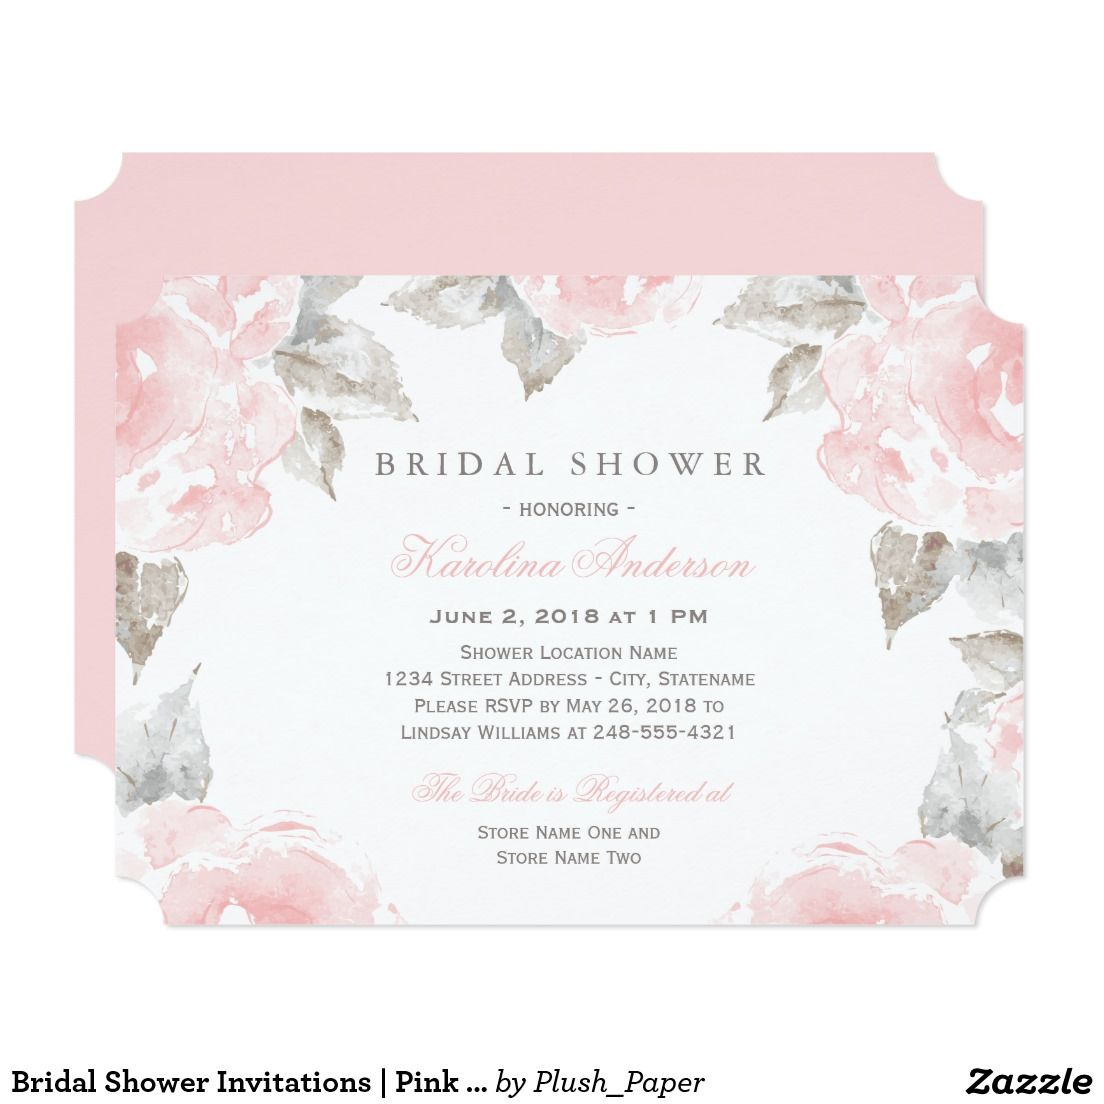 Bridal shower invitations pink watercolor roses elegant and bridal shower invitations pink watercolor roses elegant and romantic wedding bridal shower invitation design features filmwisefo Choice Image